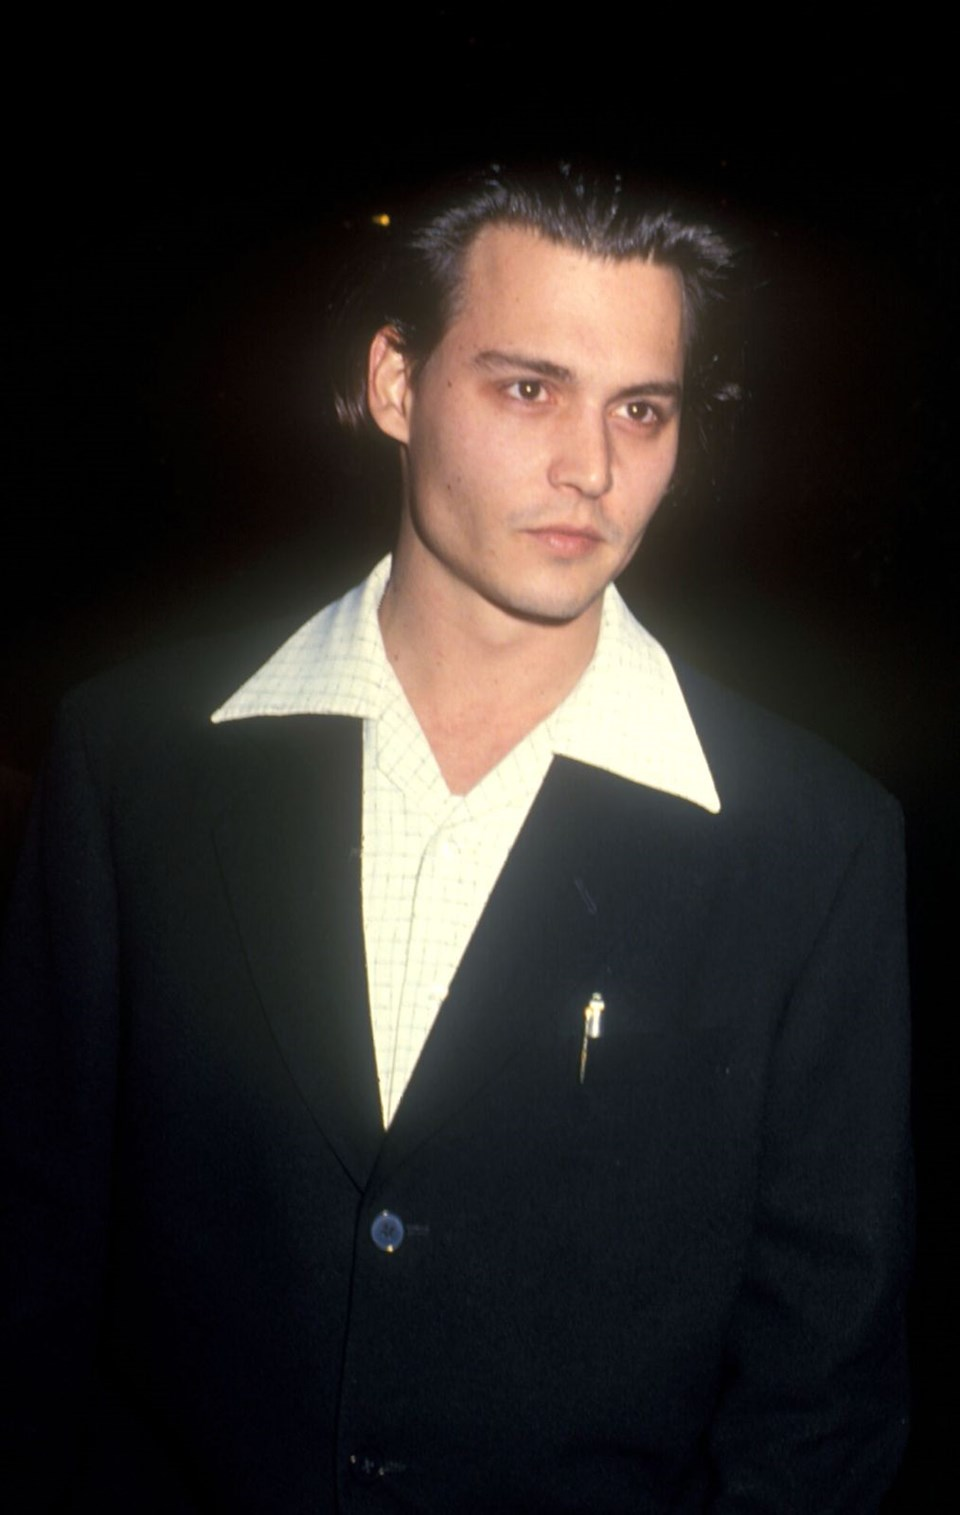 2003 VE 2009: JOHNNY DEPP